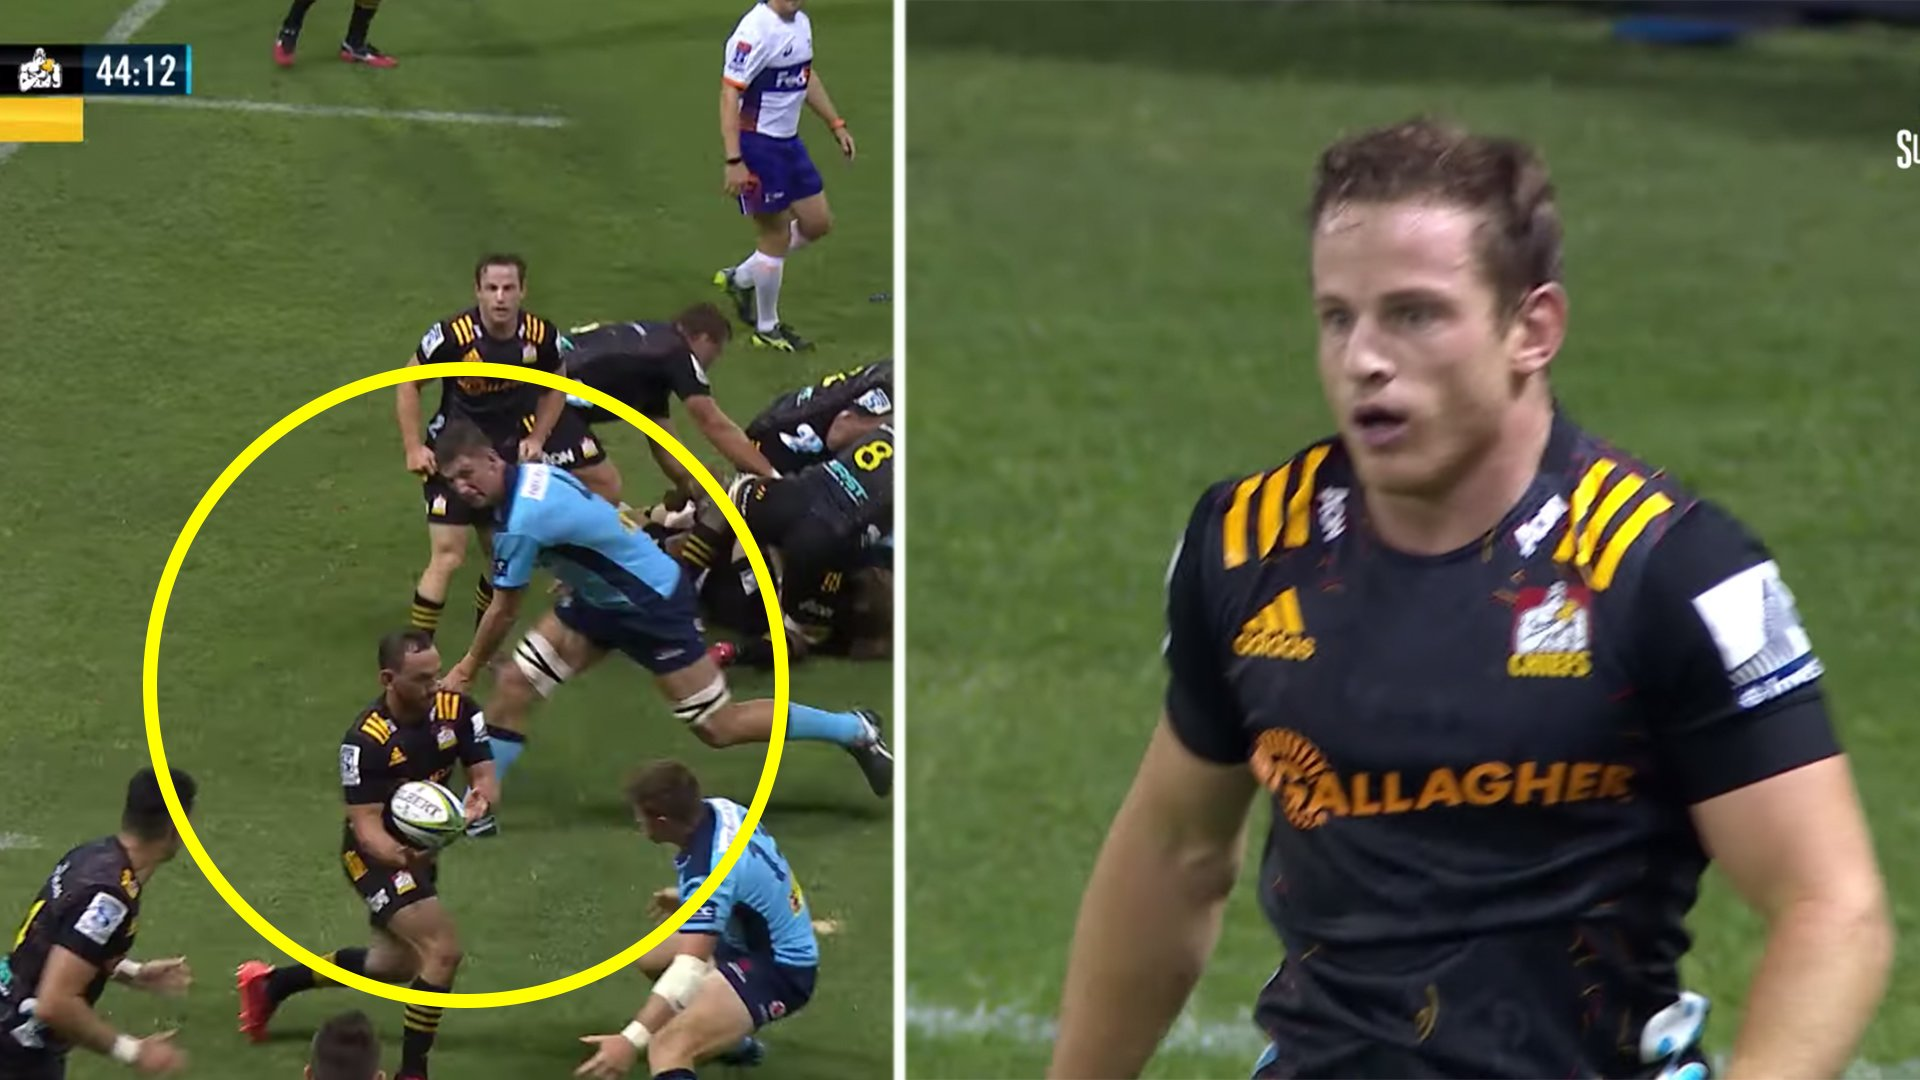 This sensational try in Super Rugby match is reminder why this competition is still on of the best in the world